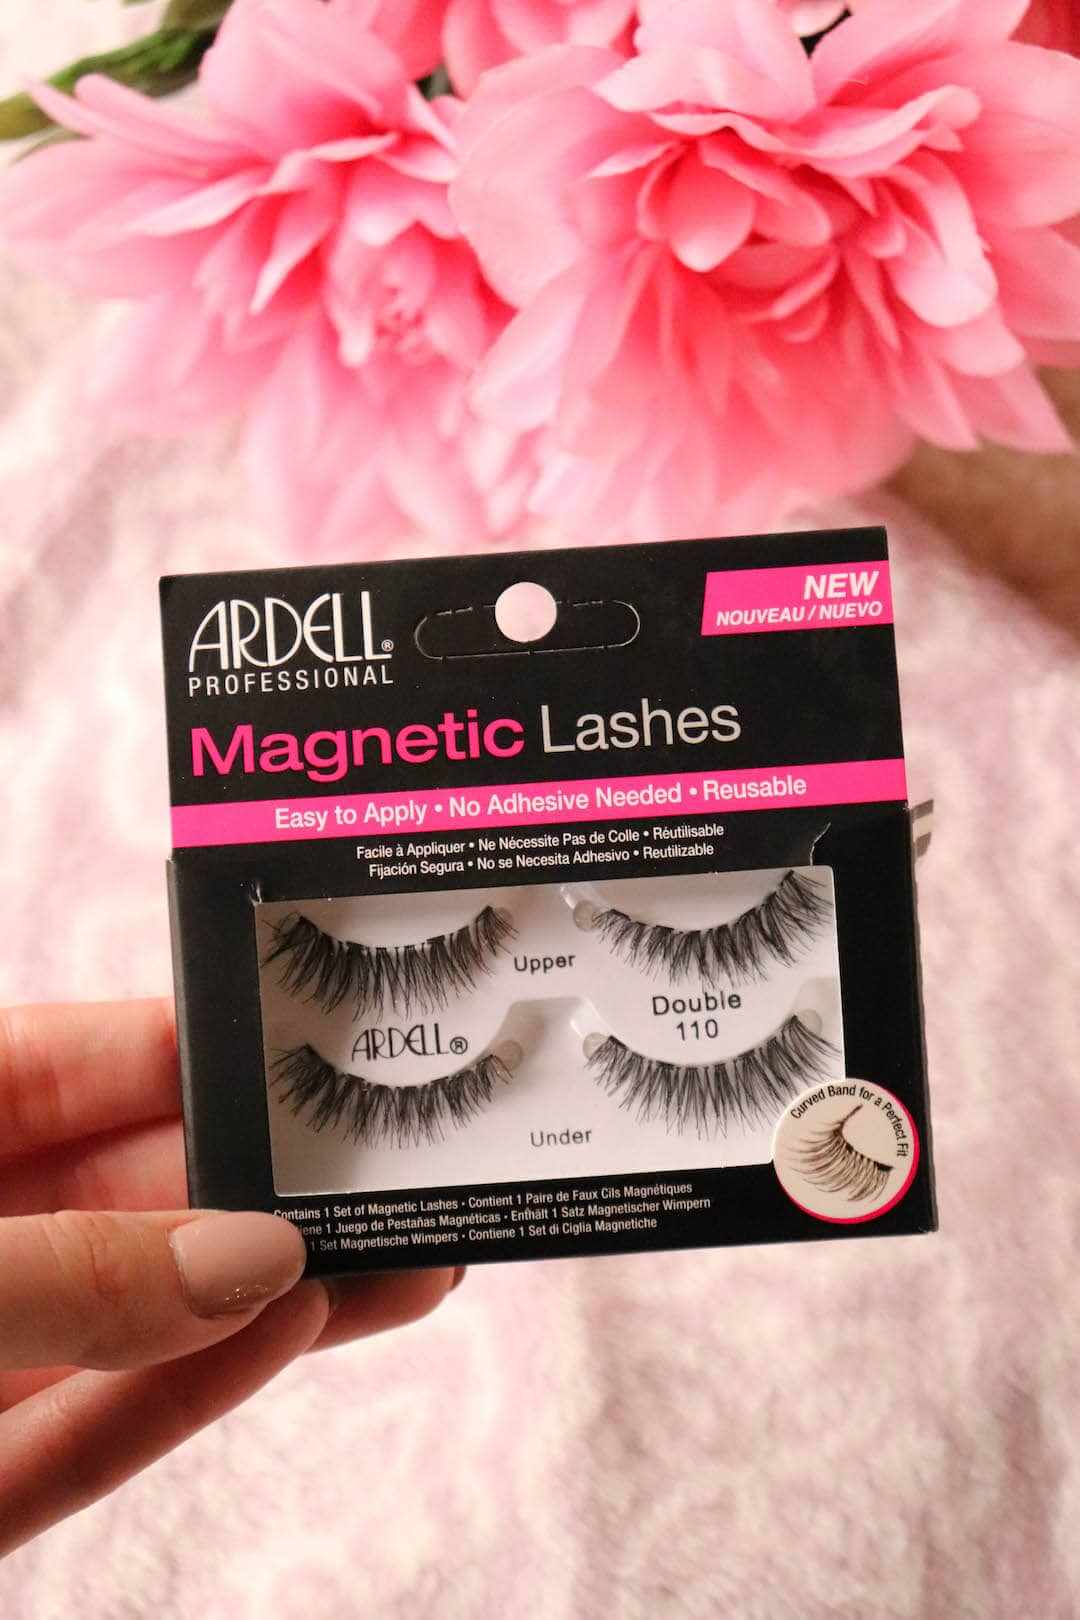 7a926e45001 How to Apply Ardell Magnetic Lashes